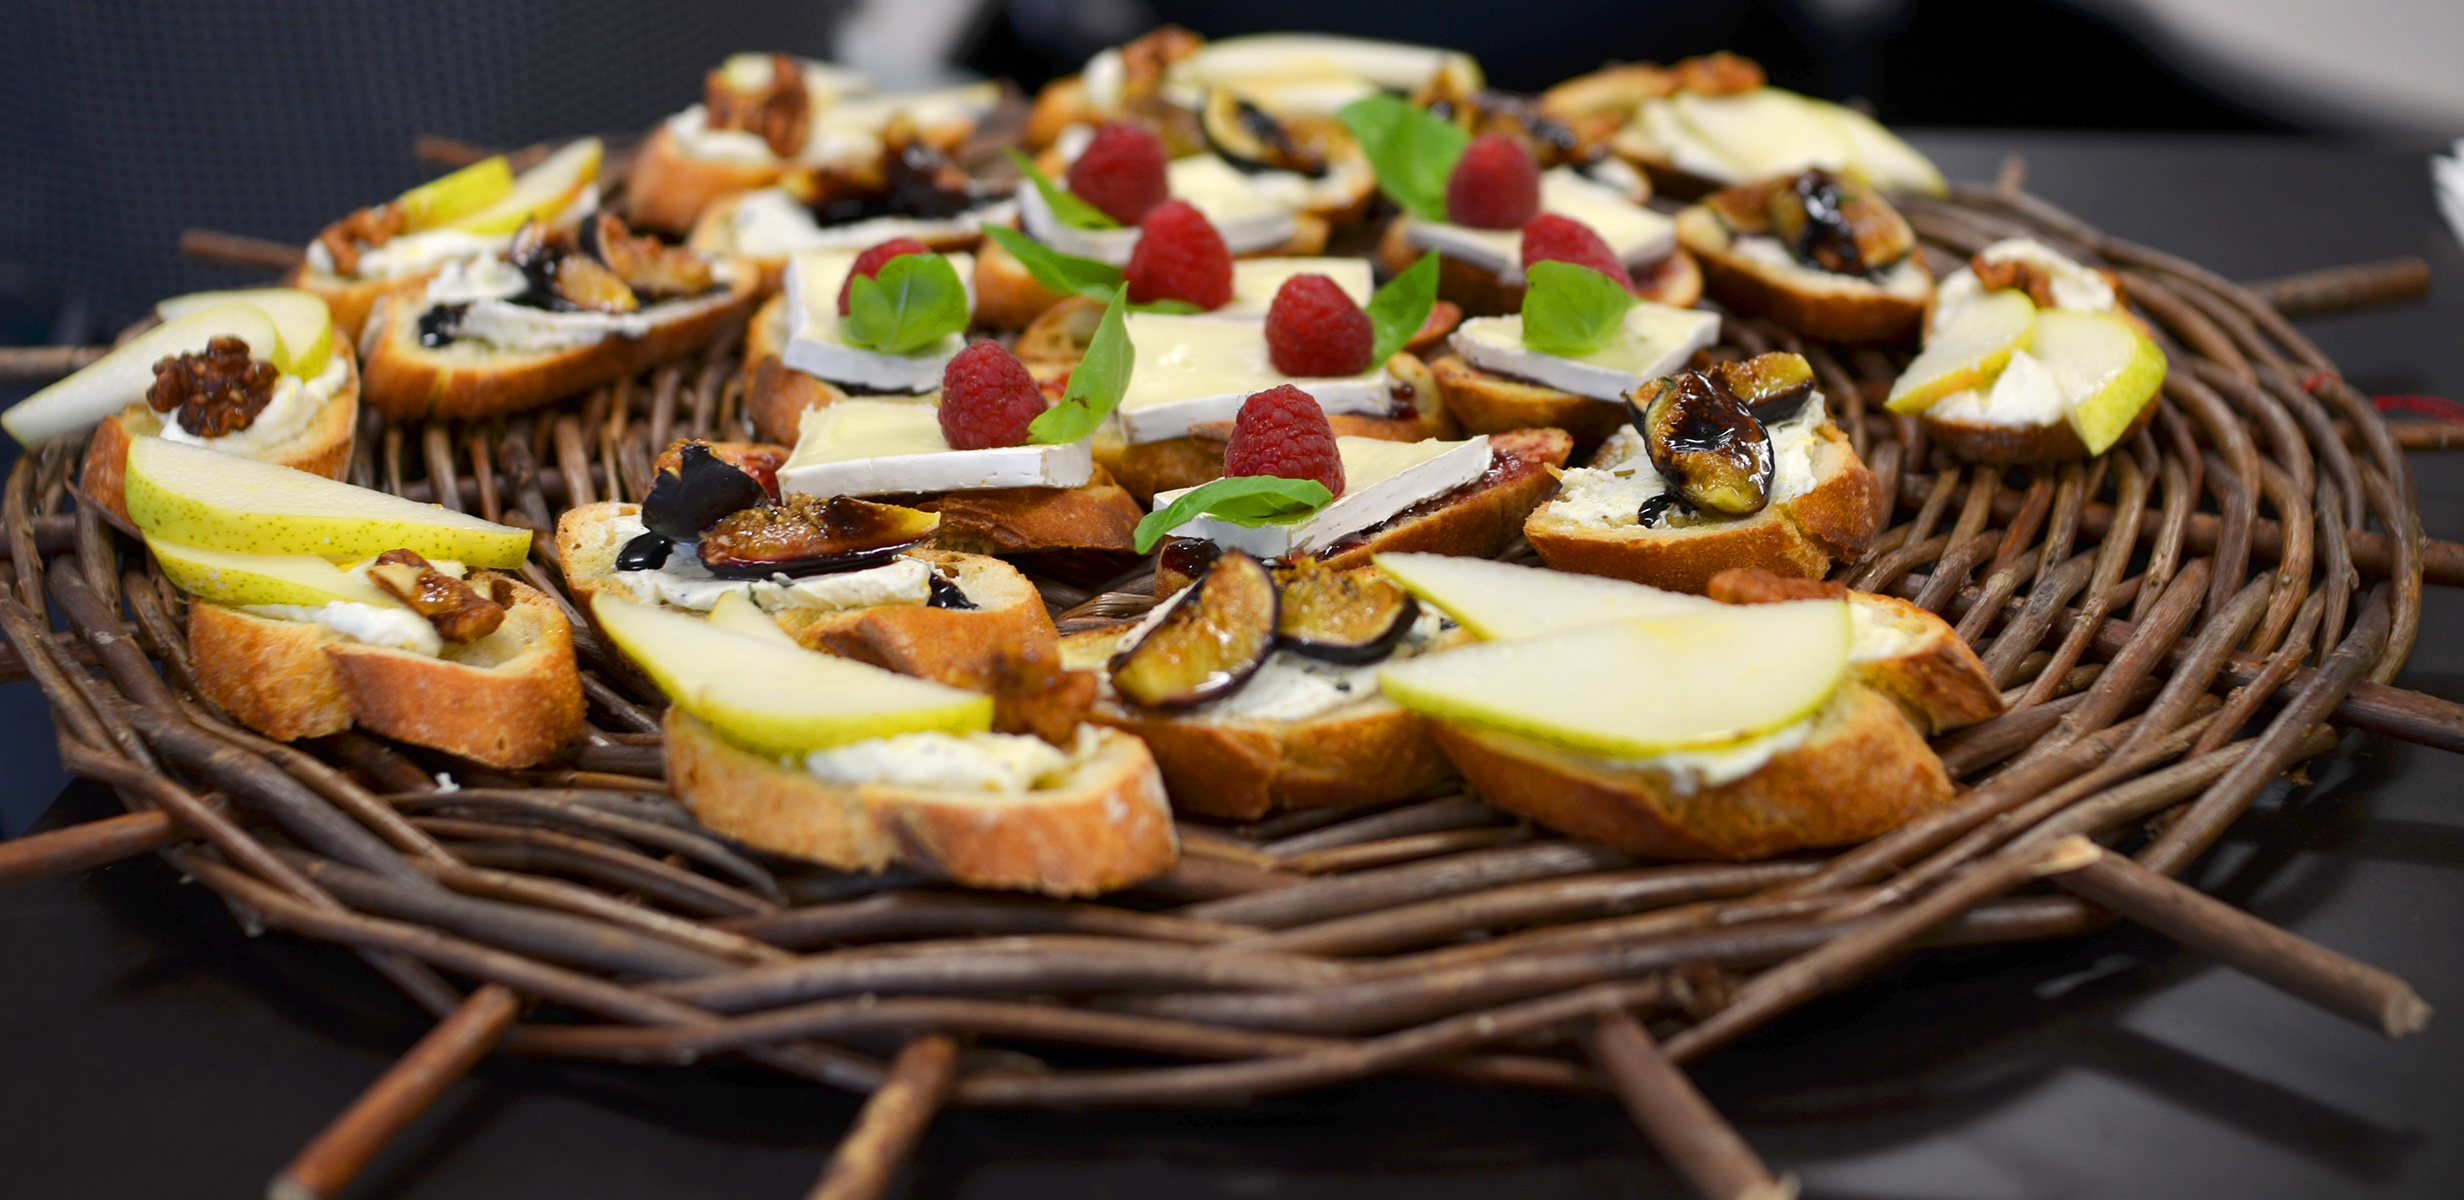 Assorted crostini: Gorgonzola fig with balsamic glaze, Raspberry brie, & Lemon zest ricotta with pear, glazed walnut, and honey drizzle.